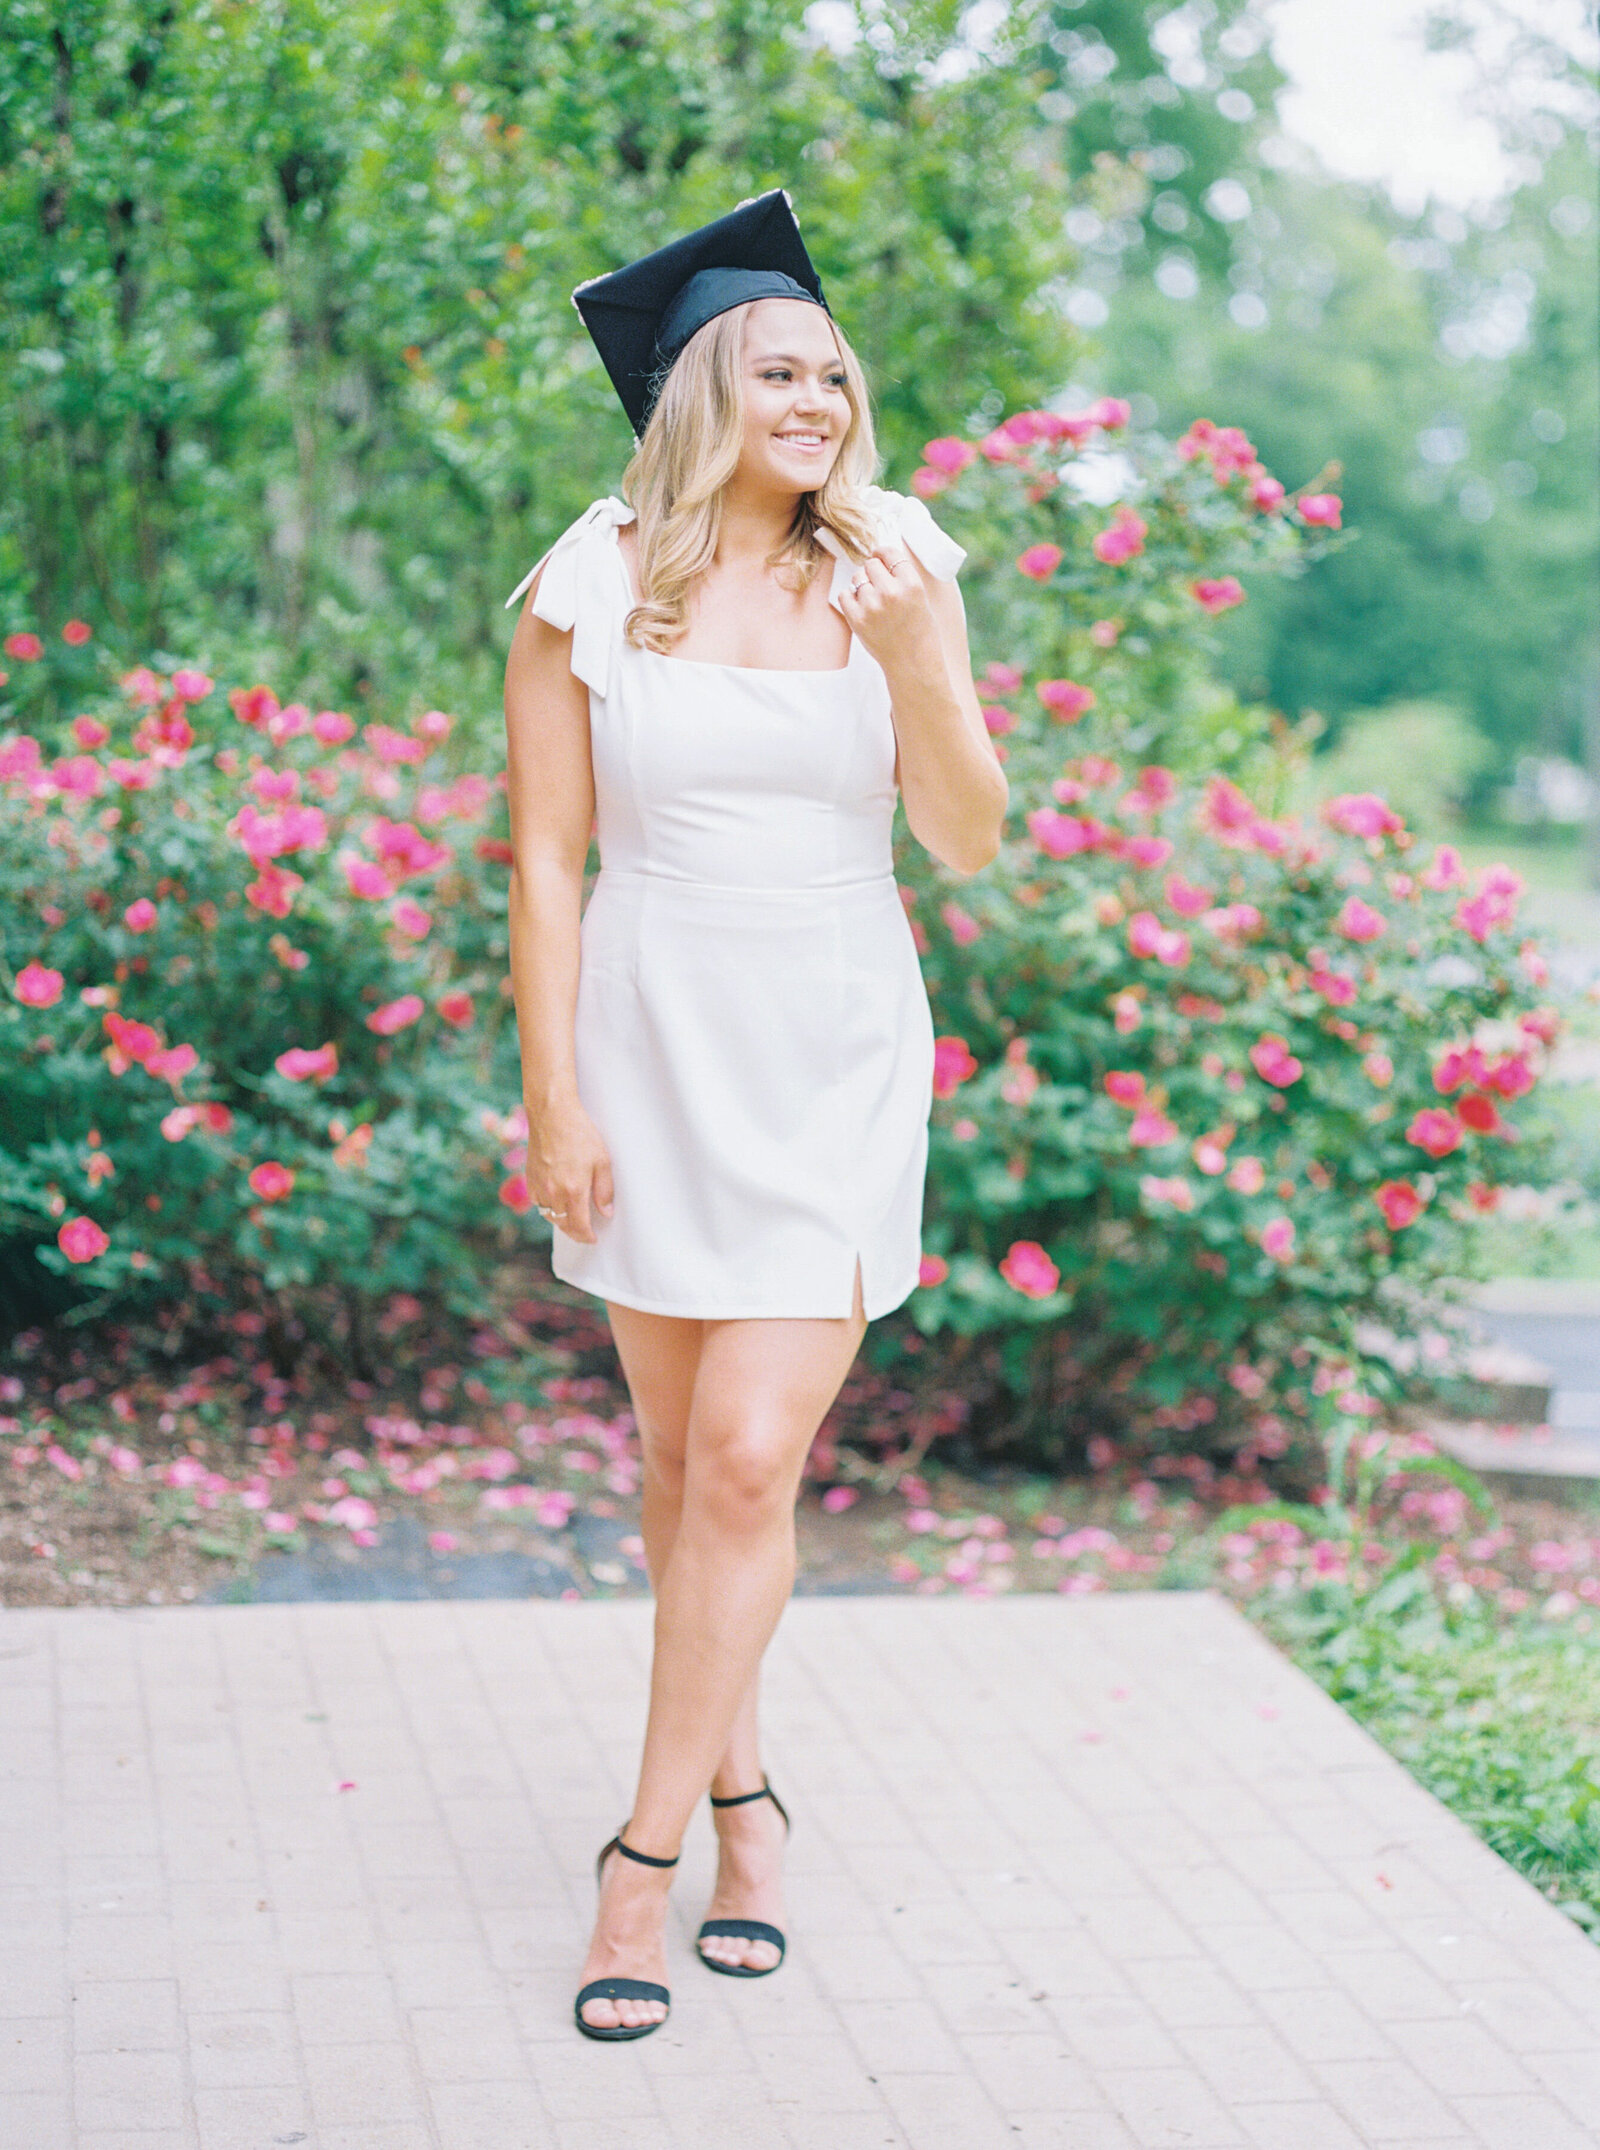 skyler_senior_session_20_film-45